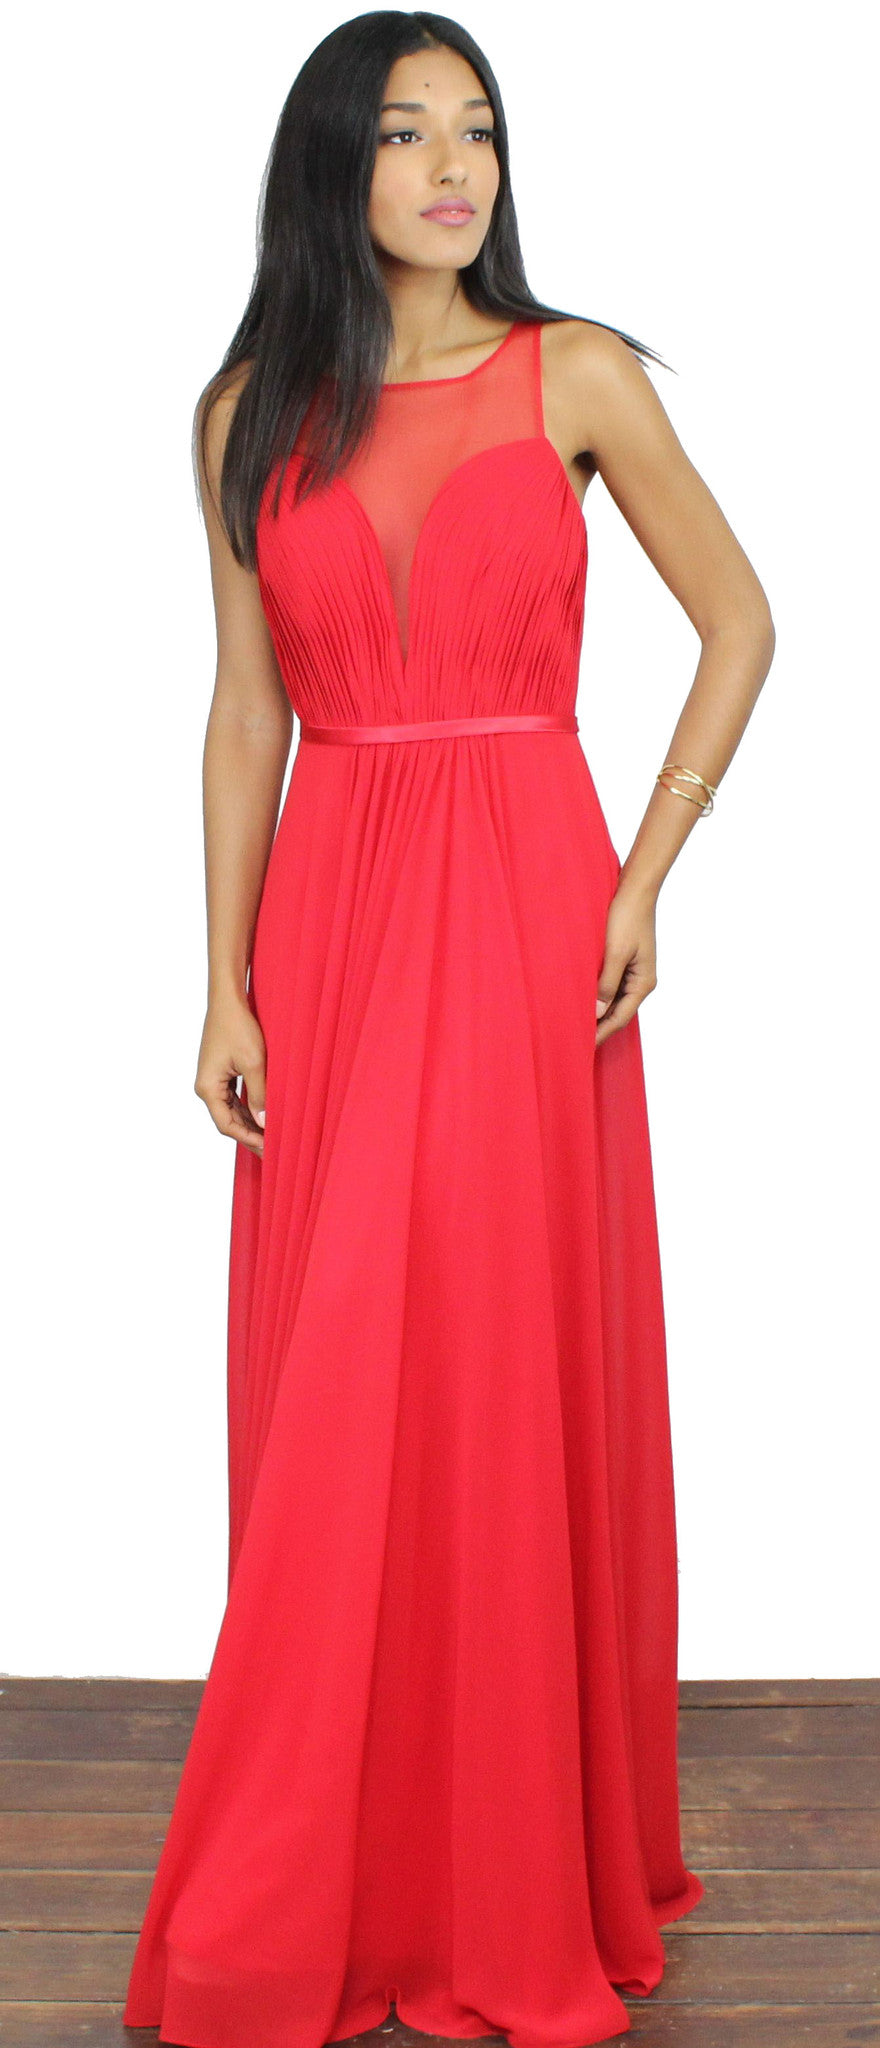 Looking Glass Red Draped Gown